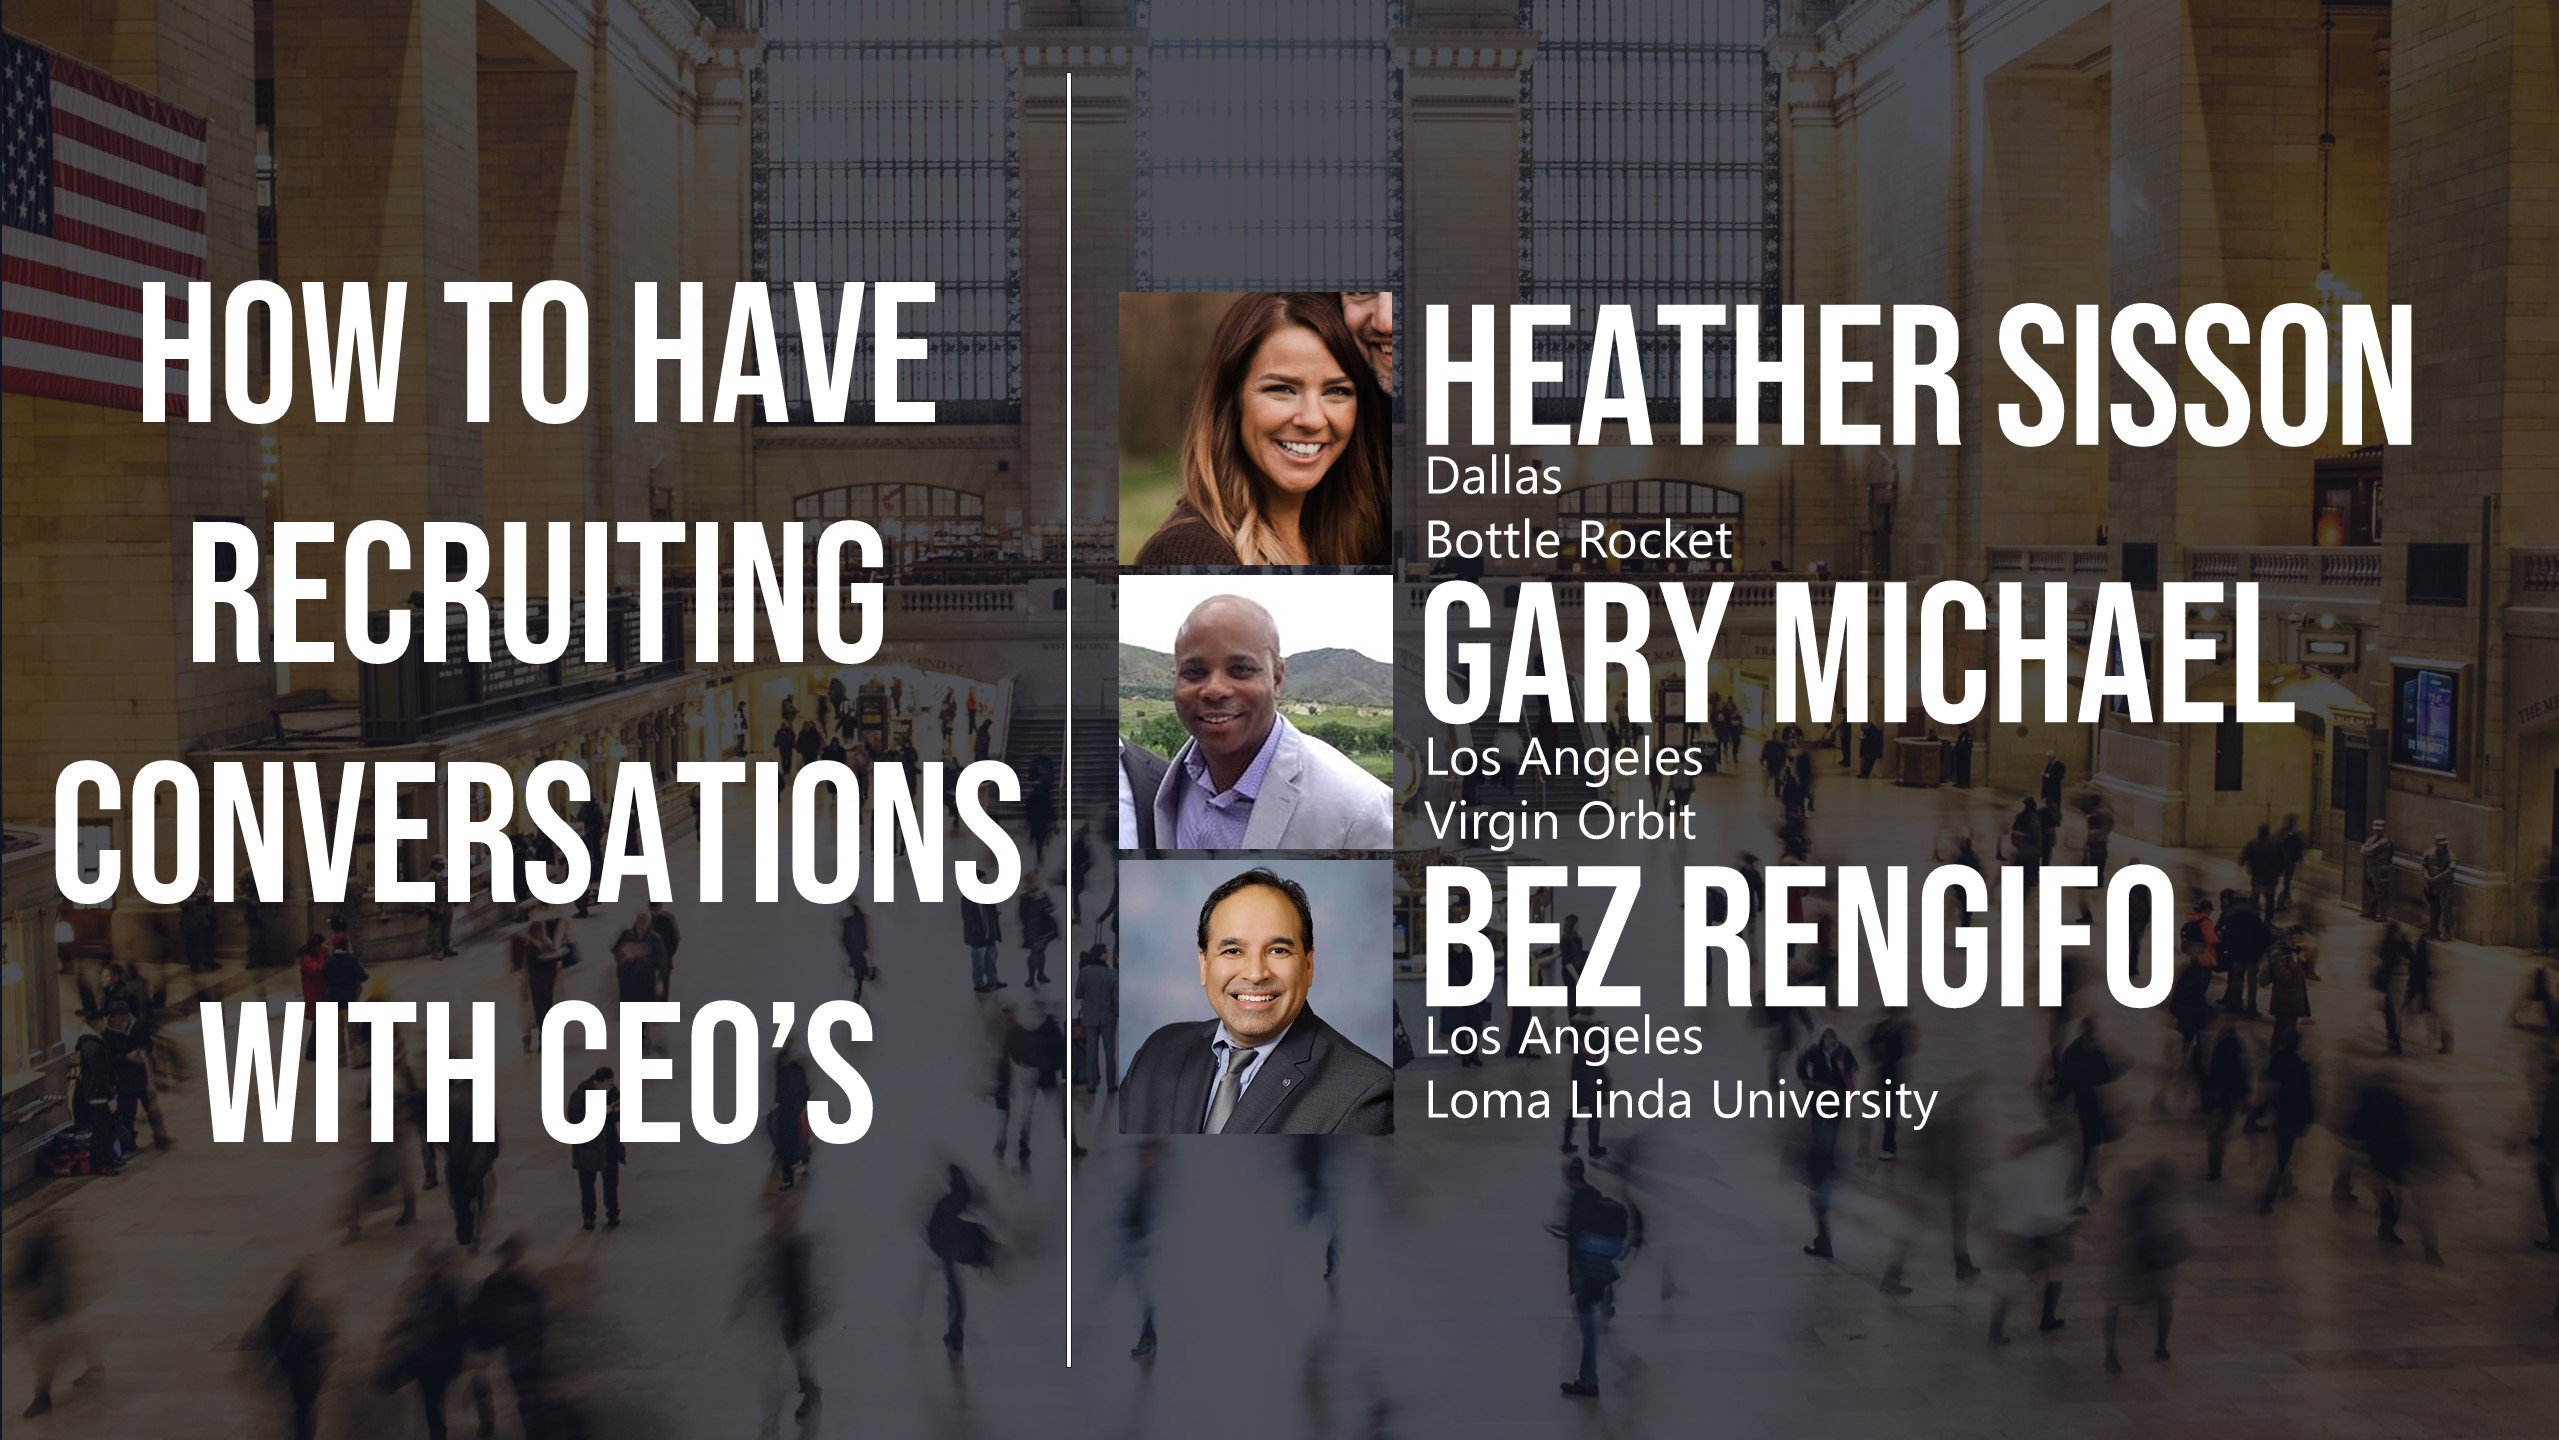 How to Have Recruiting Conversations with CEO's